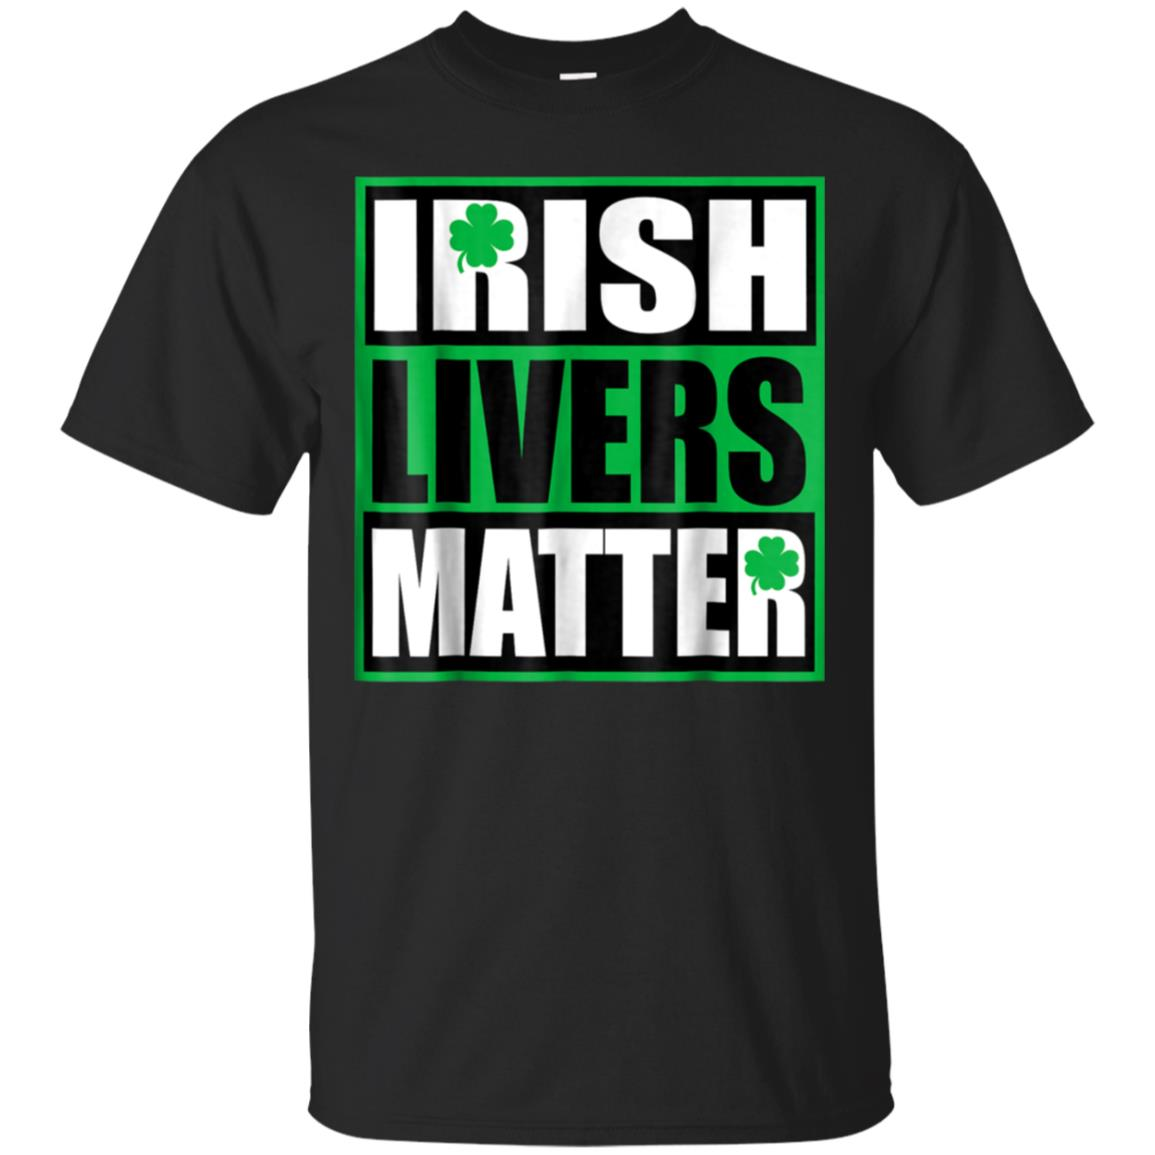 Funny Irish Livers Matter Saint Patrick Day T-Shirt 99promocode